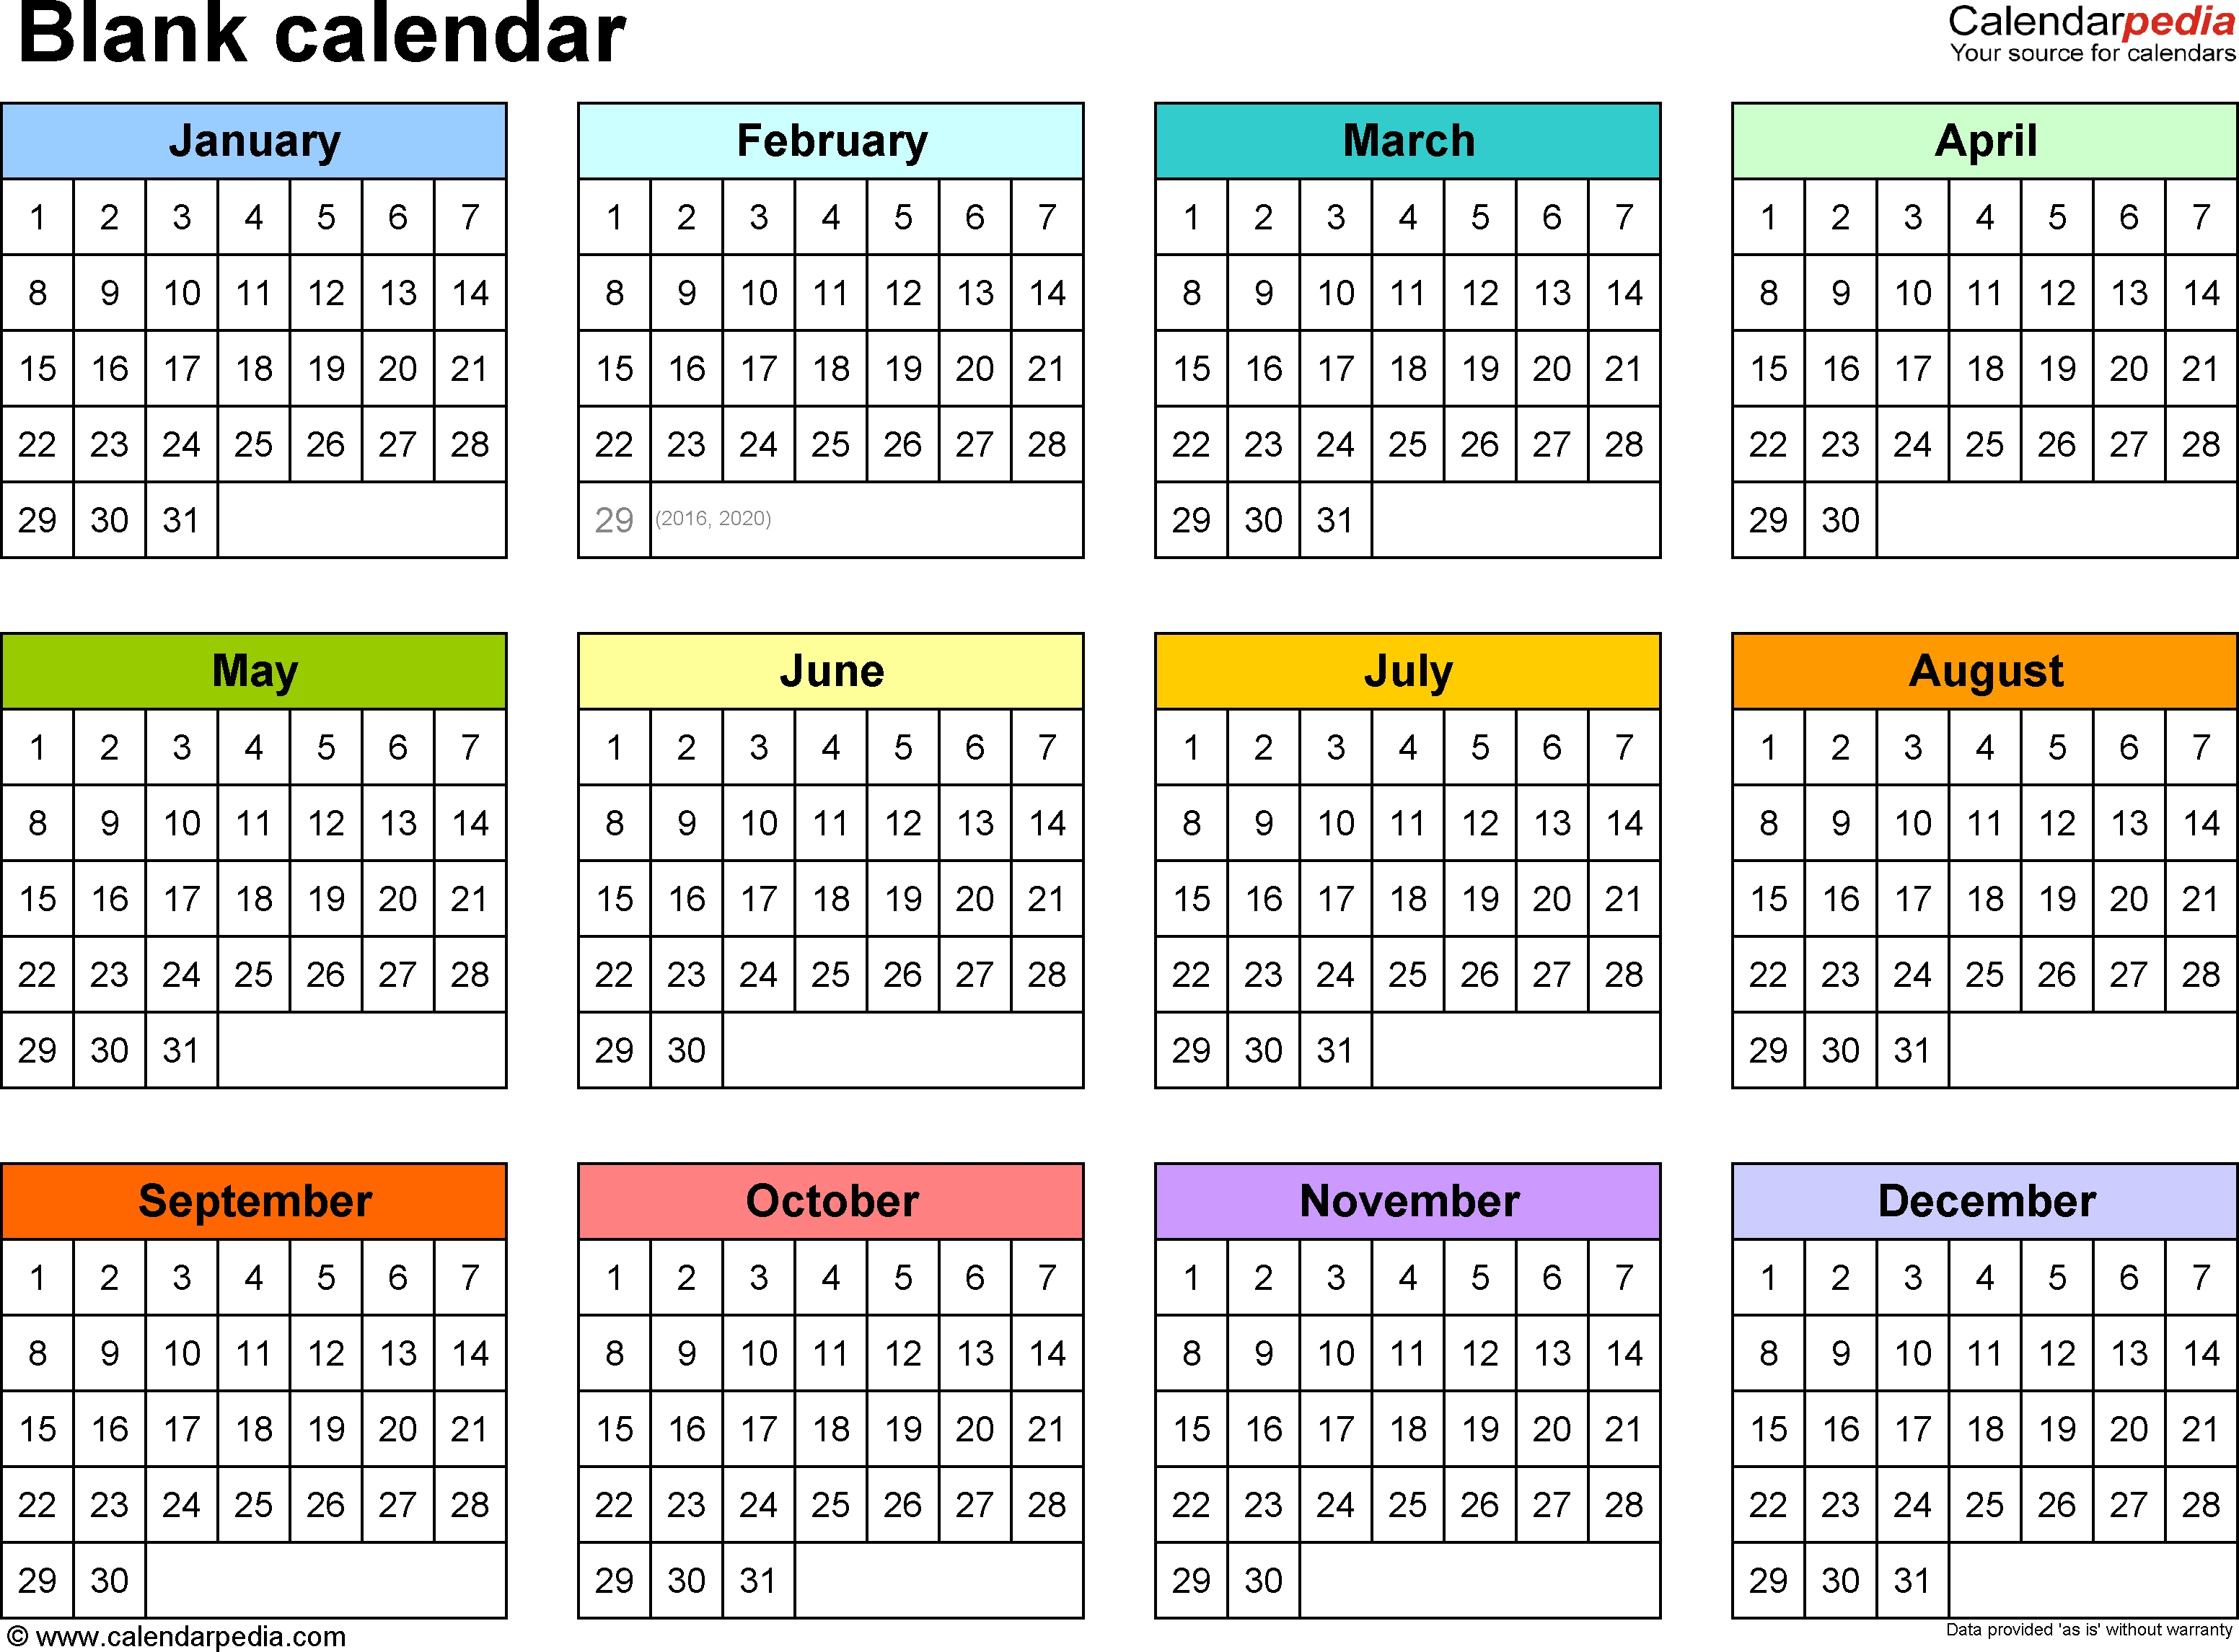 Blank Calendar - 9 Free Printable Microsoft Word Templates  Year At A Glance Calendars Printable